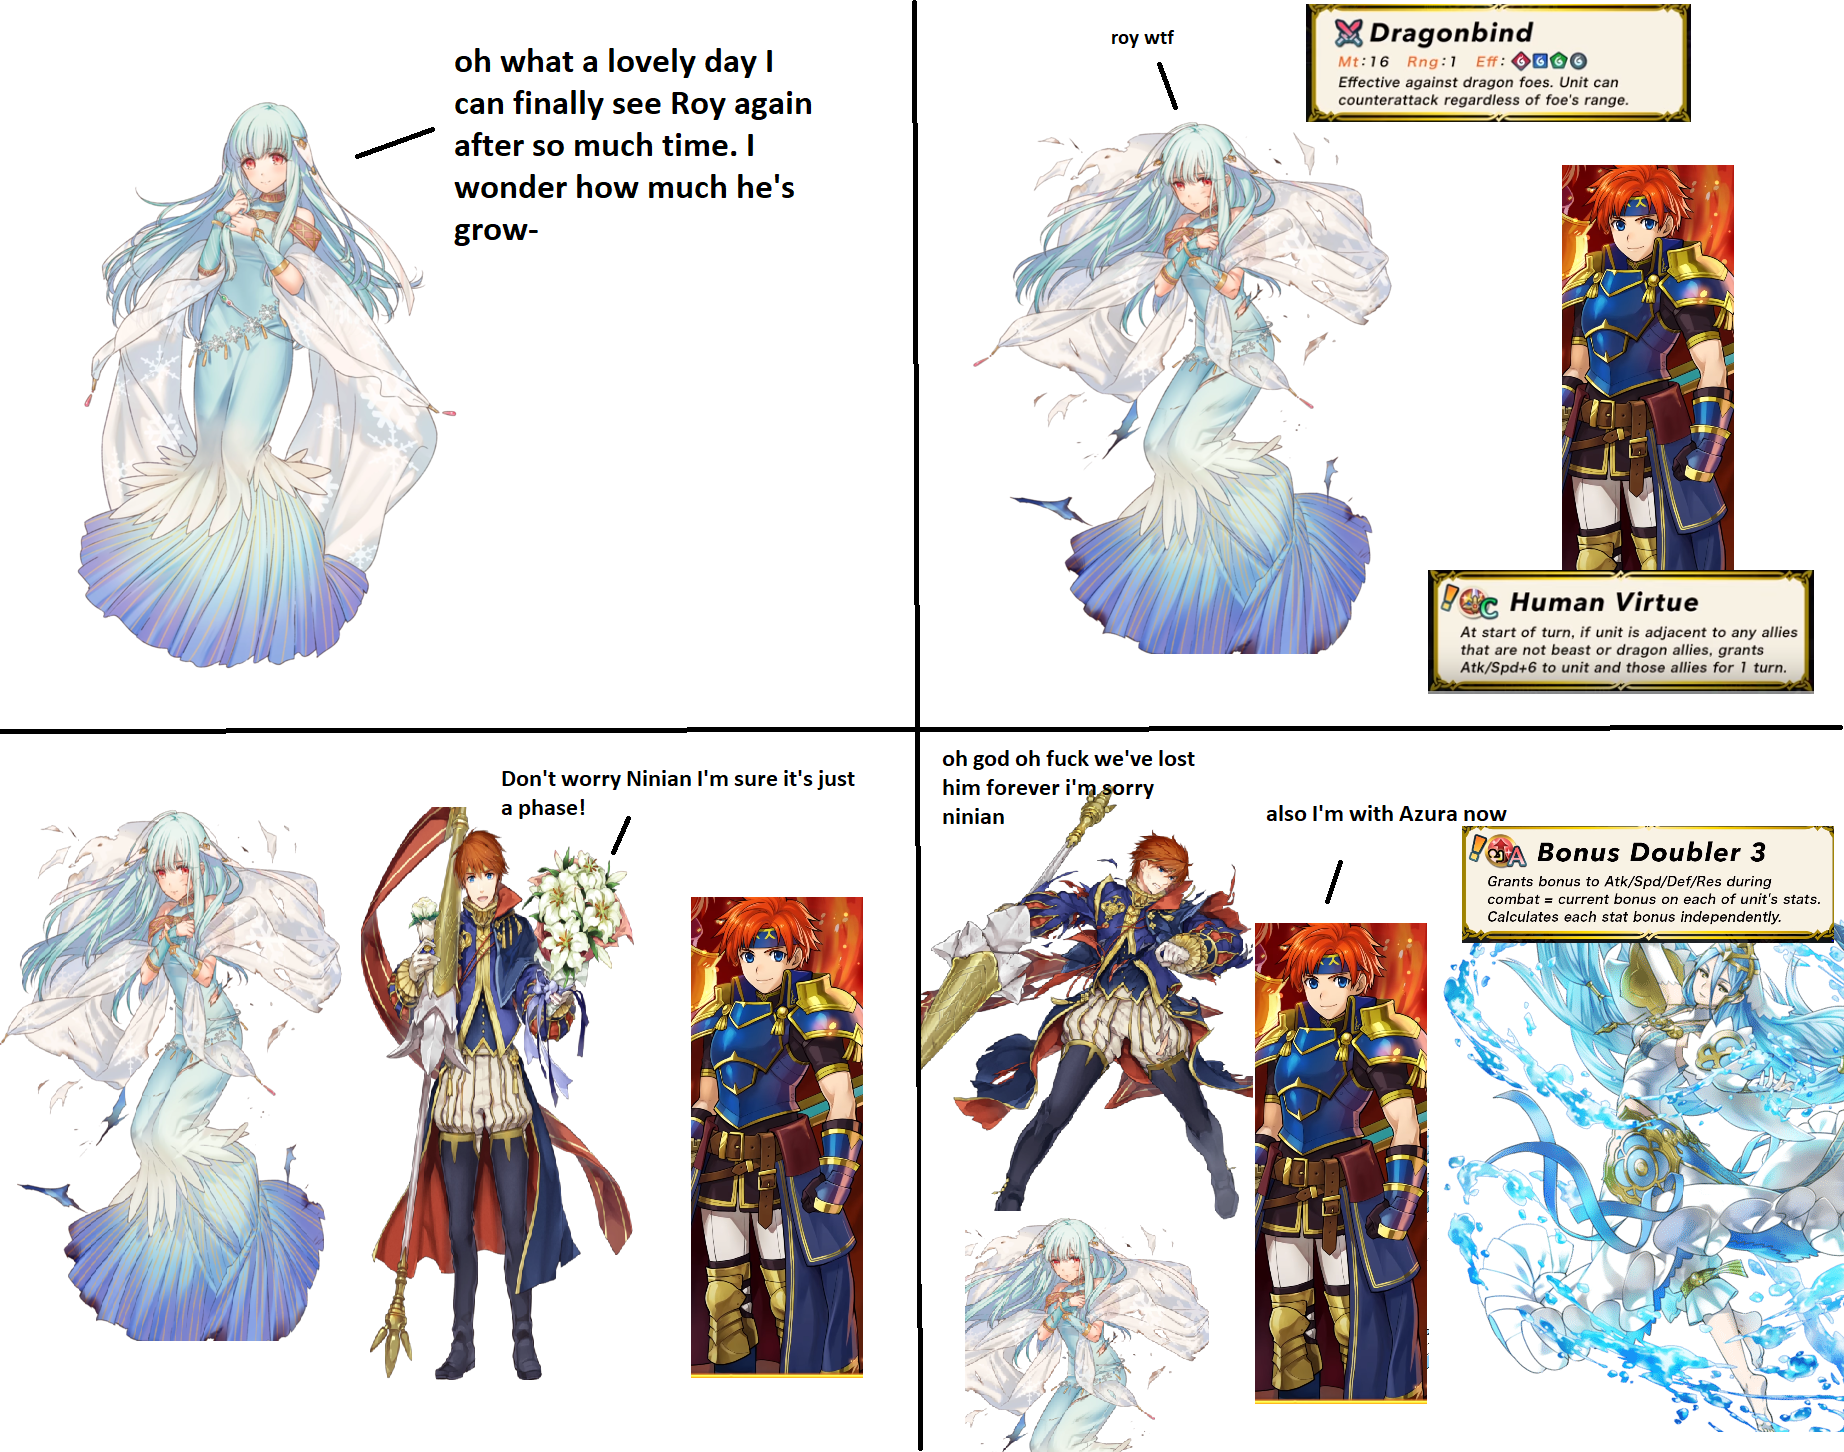 Ninian Learns About Legendary Roy Fire Emblem Heroes Know Your Meme